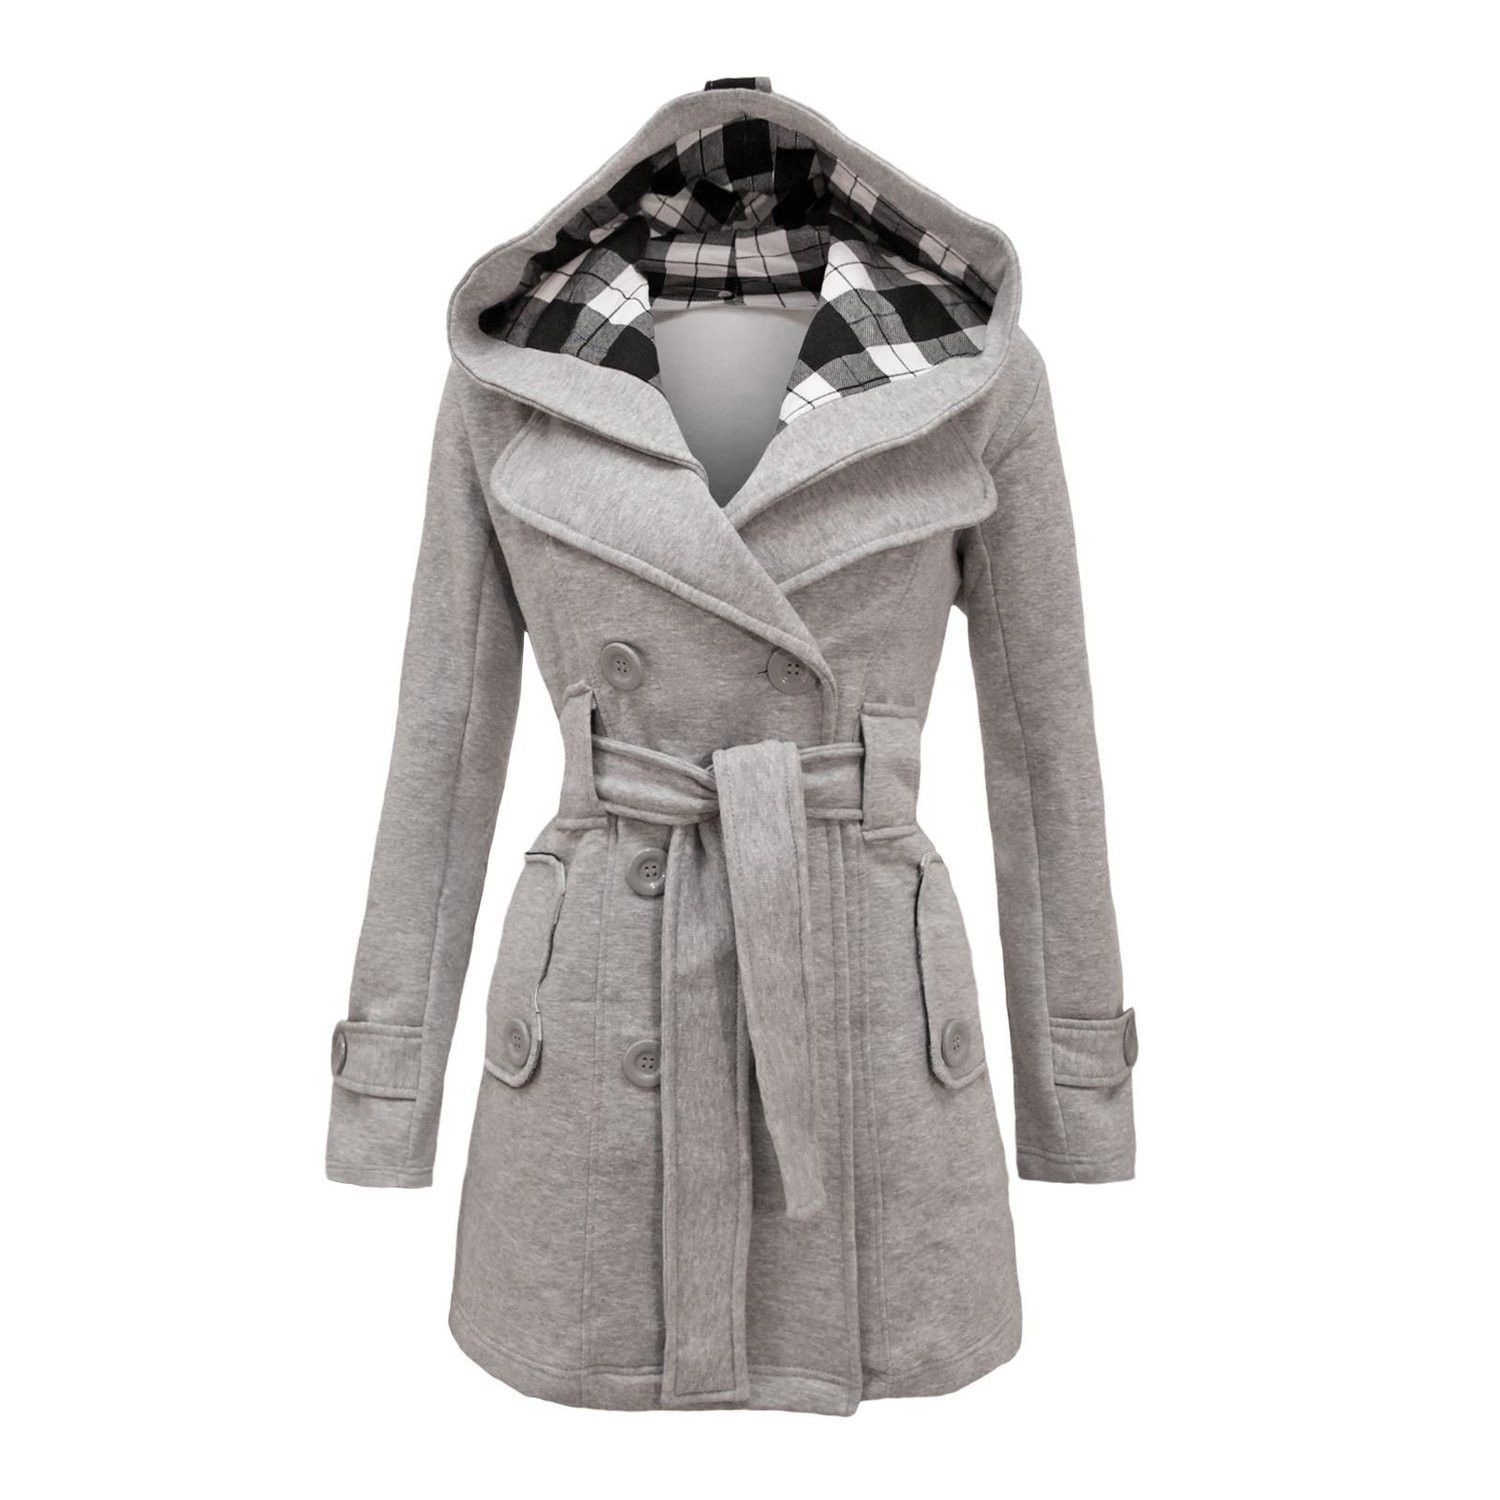 8c85d152dd Don t want wear normal coats again  This hooded long coat will your best  choice. This woolen coat with plus size XXL and XXXL